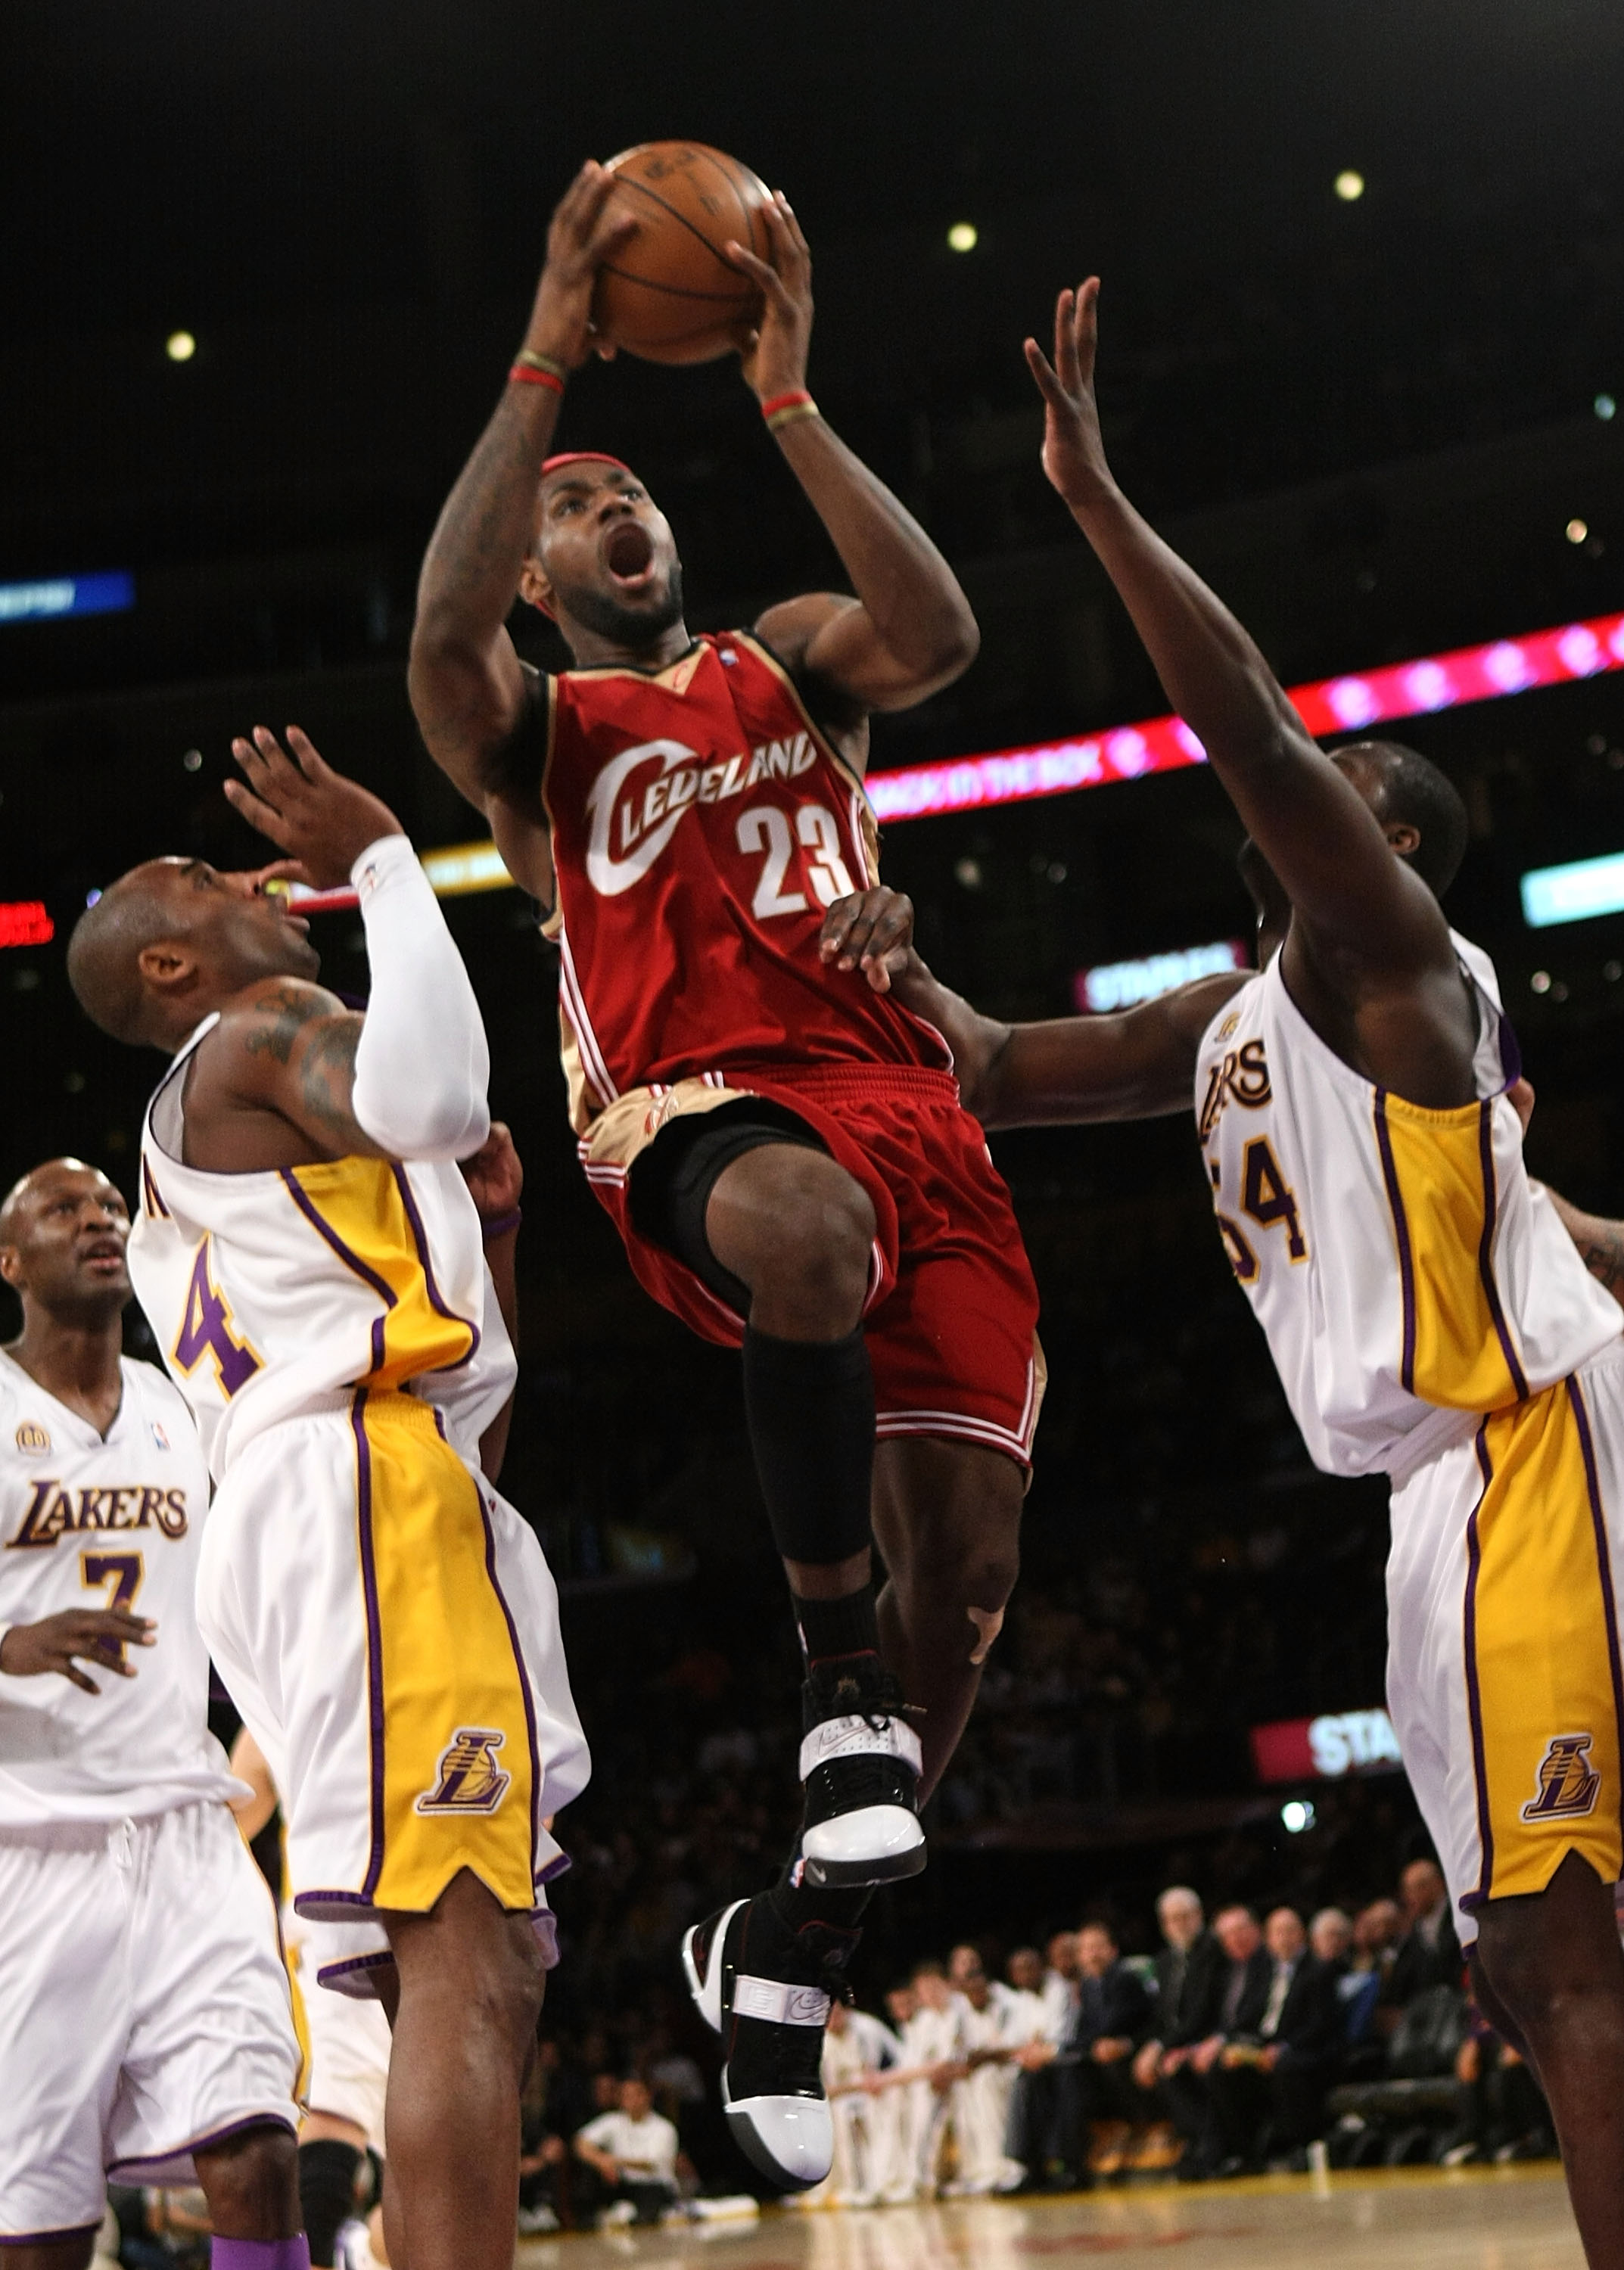 LOS ANGELES - JANUARY 27:  LeBron James #23 of the Cleveland Cavaliers goes up for a shot between Kobe Bryant #24 and Kwame Brown #54 of the Los Angeles Lakers at Staples Center January 27, 2008 in Los Angeles, California.   NOTE TO USER: User expressly a